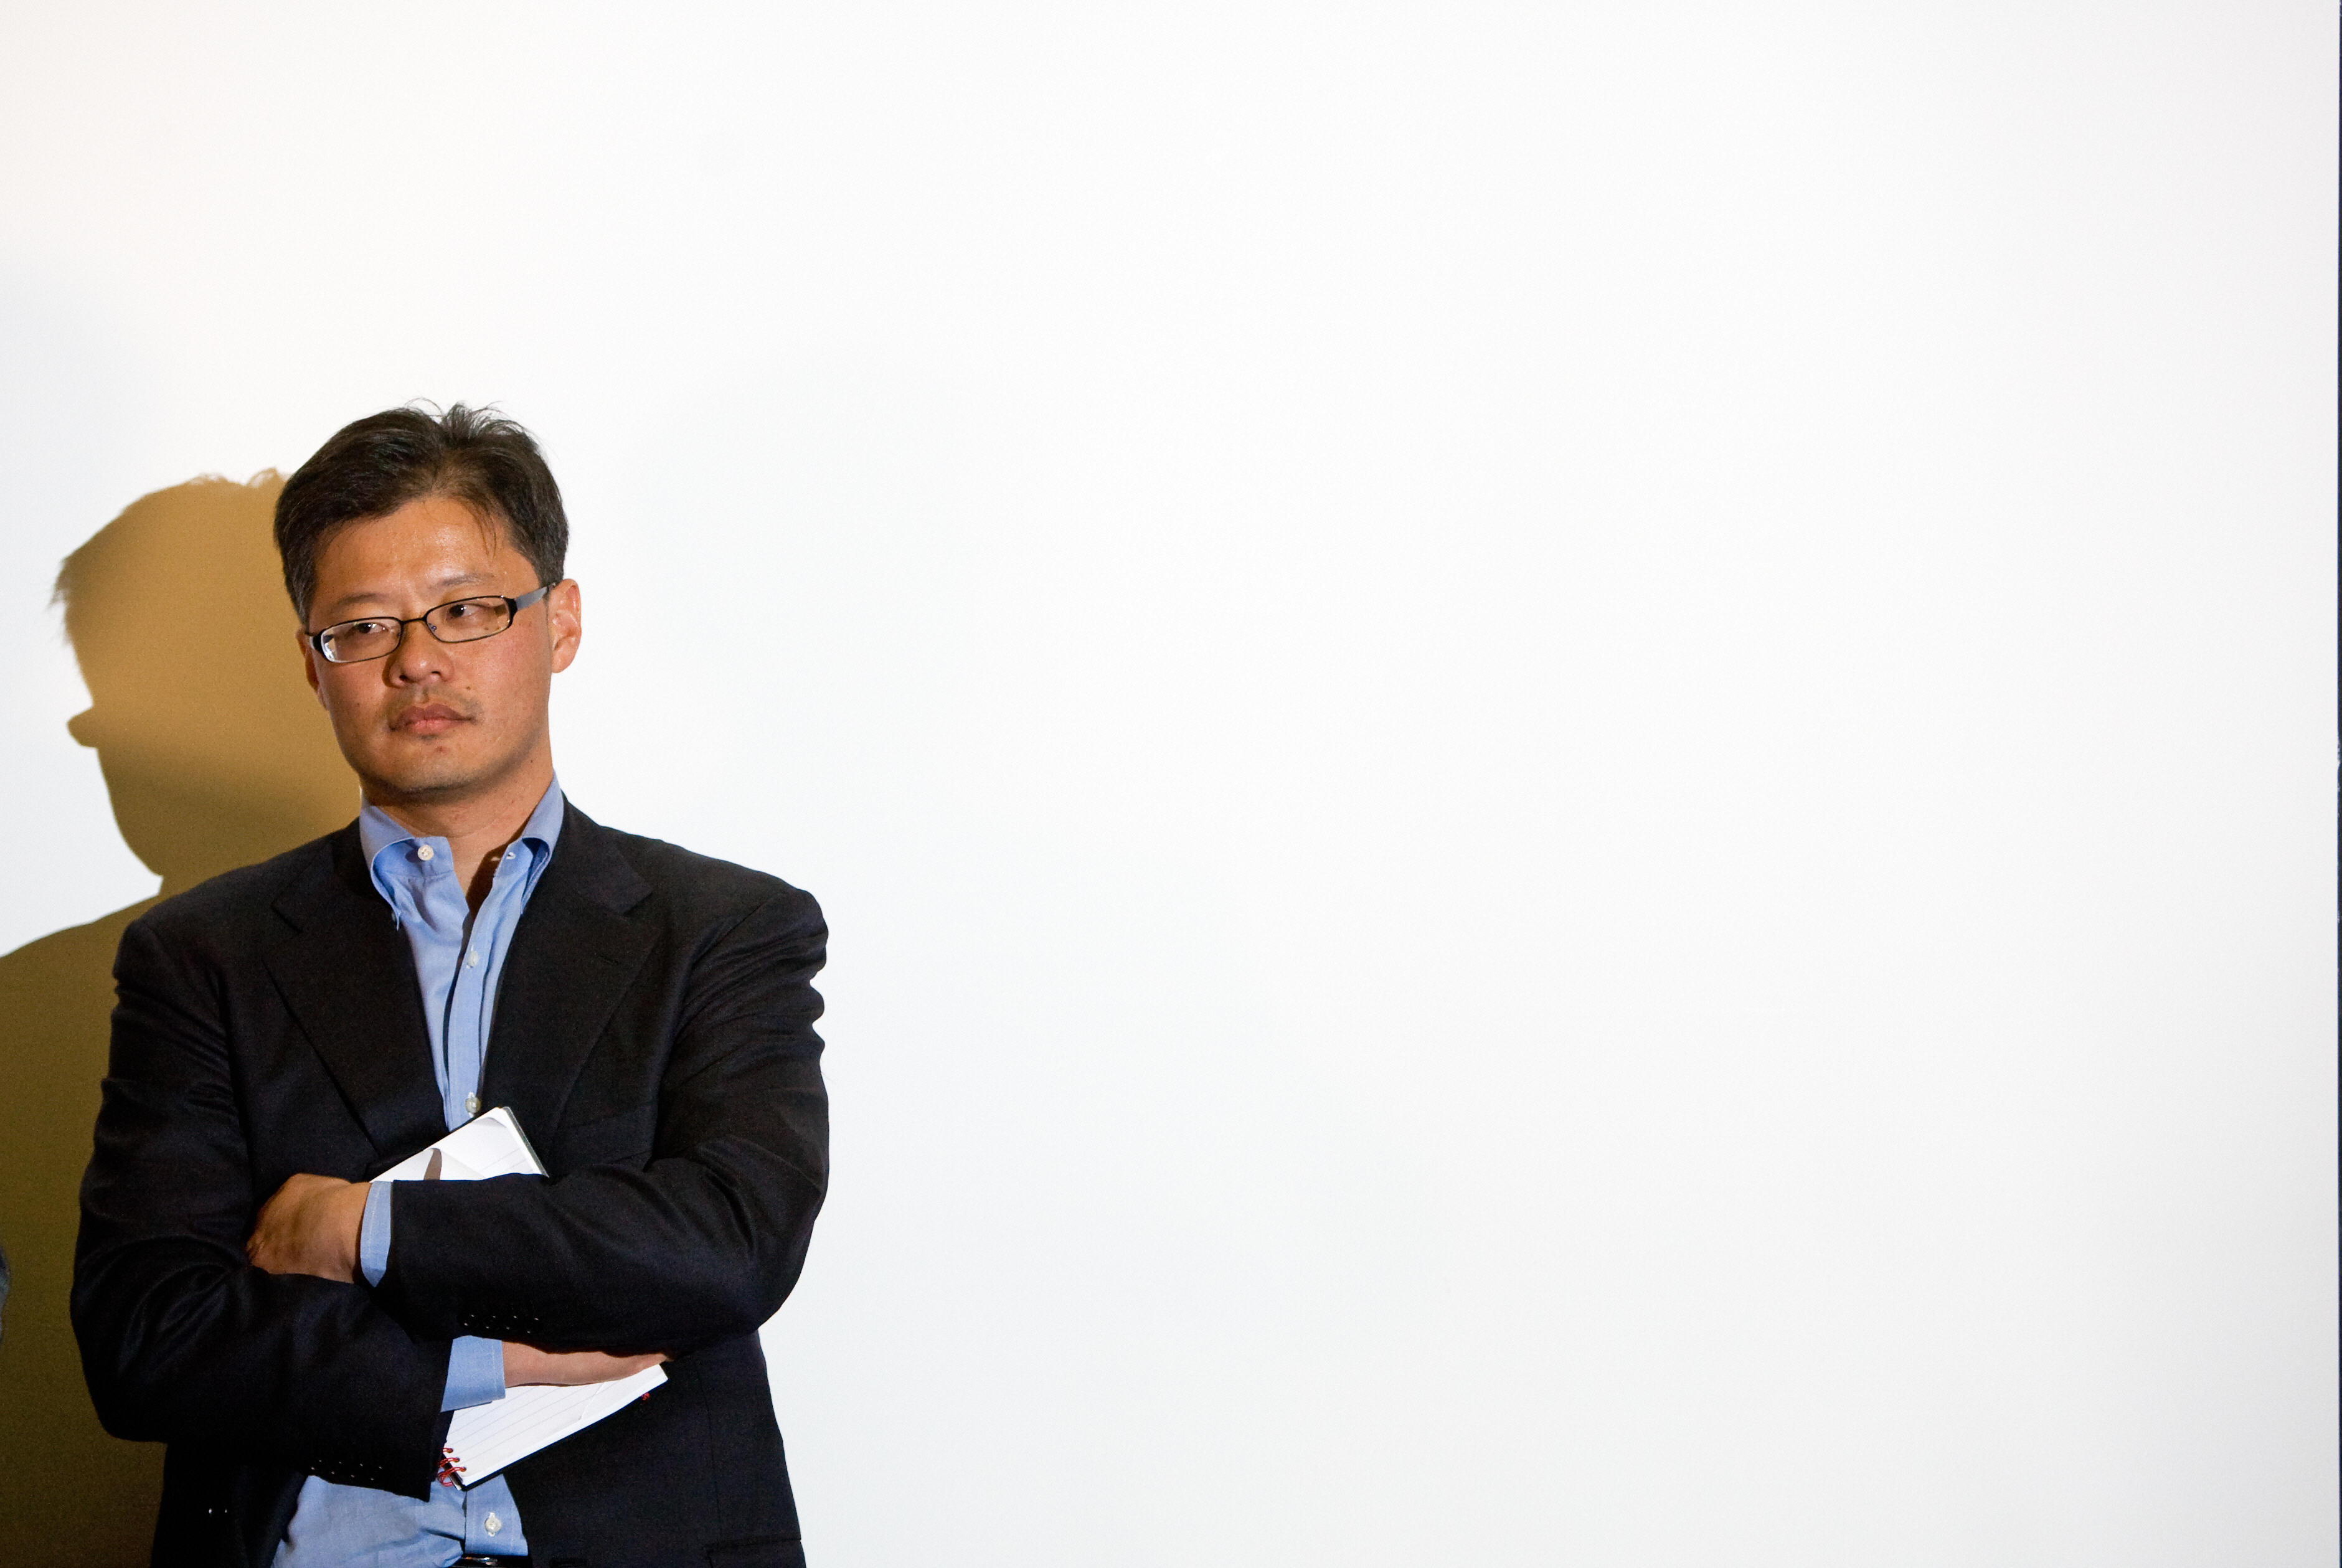 Jerry Yang, co-founder and CEO of Yahoo